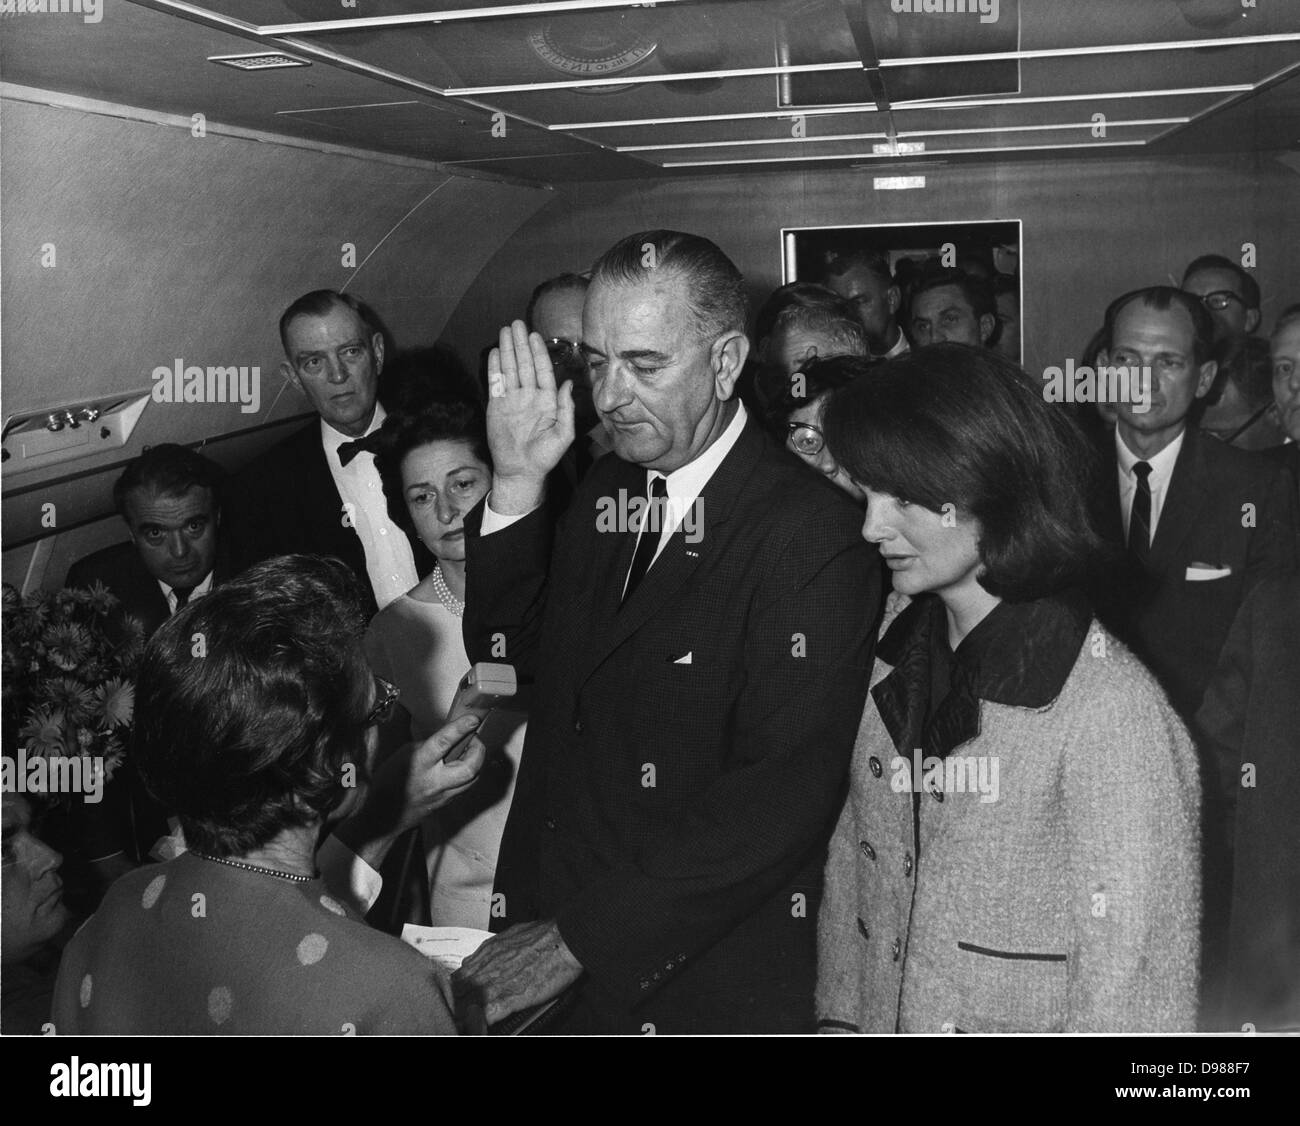 Swearing in of Lyndon Baines Johnson (1908-1973) as 36th President of the United States, 22 November 1963. The ceremony took place on Air Force One, Love Field, Dallas, Texas. At his side is Jackie Kennedy, widow of the assassinated president, John F Kennedy. LBJ Library, photo by Cecil Stoughton. Stock Photo